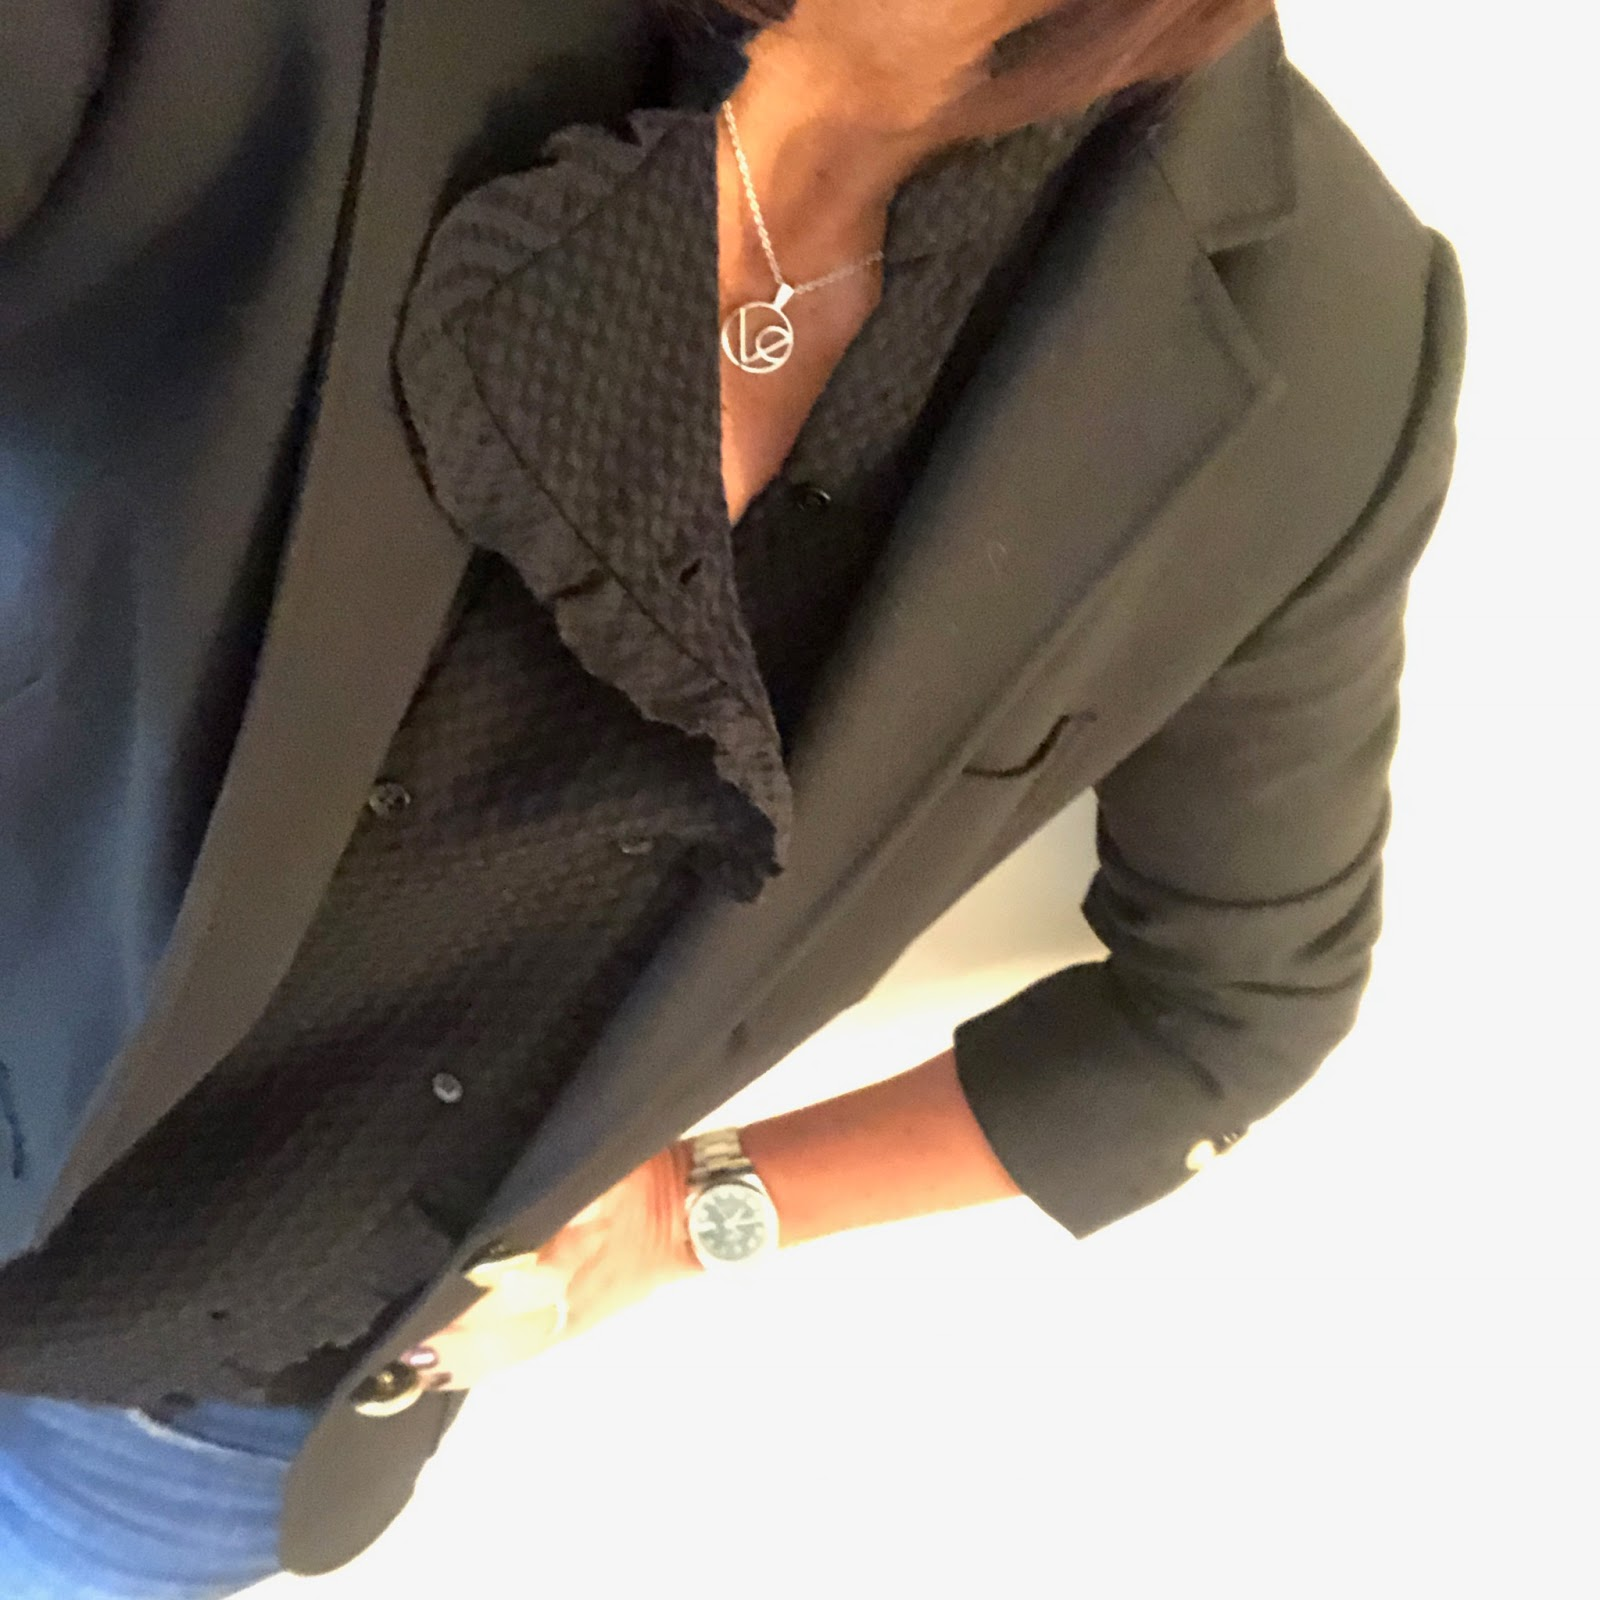 "my midlife fashion, j crew rhodes blazer, village england misterton necklace, Ba&sh blouse, j crew toothpick 8"" skinny jeans, the kooples studded belt, boden studded flat shoes"